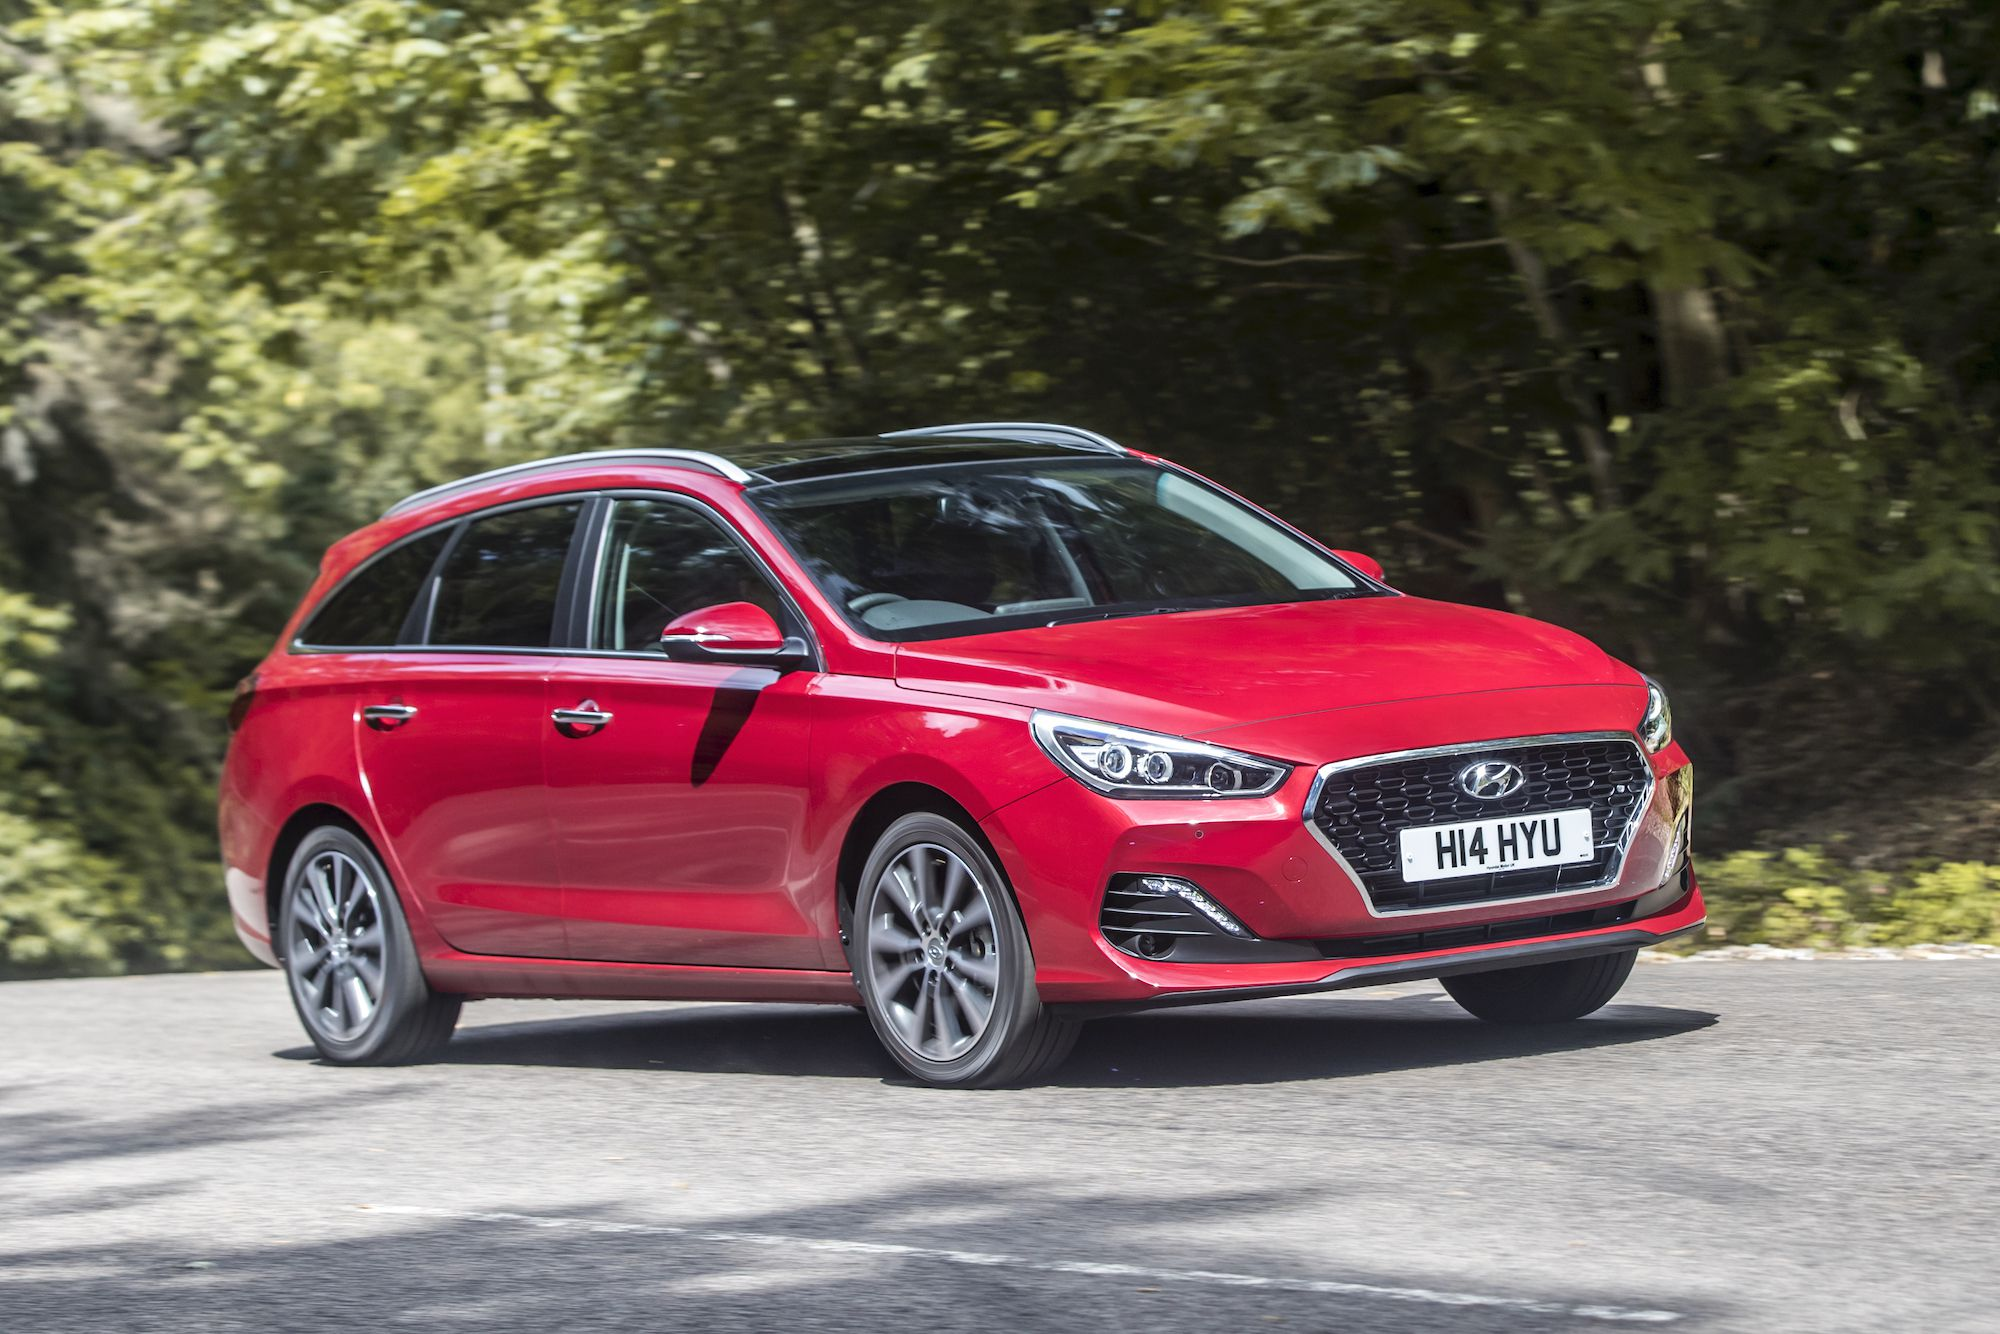 Red Hyundai i30 Tourer